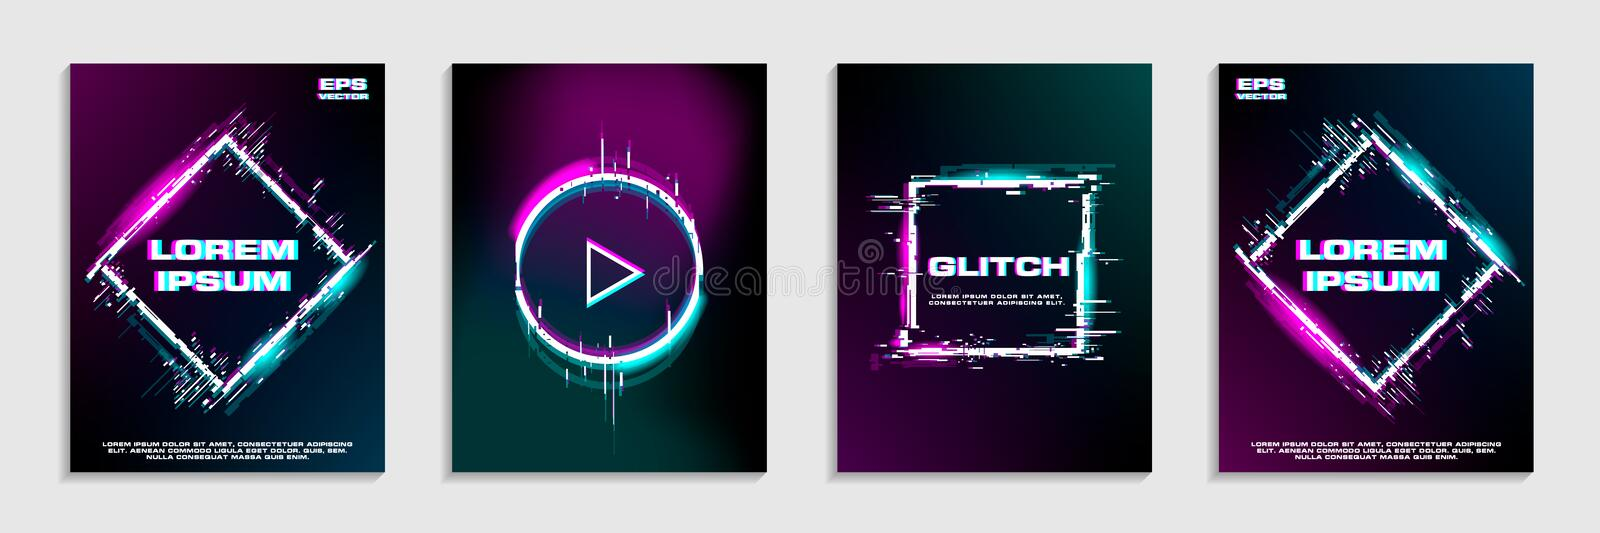 Brochure template layout design with glitch and neon effect royalty free illustration